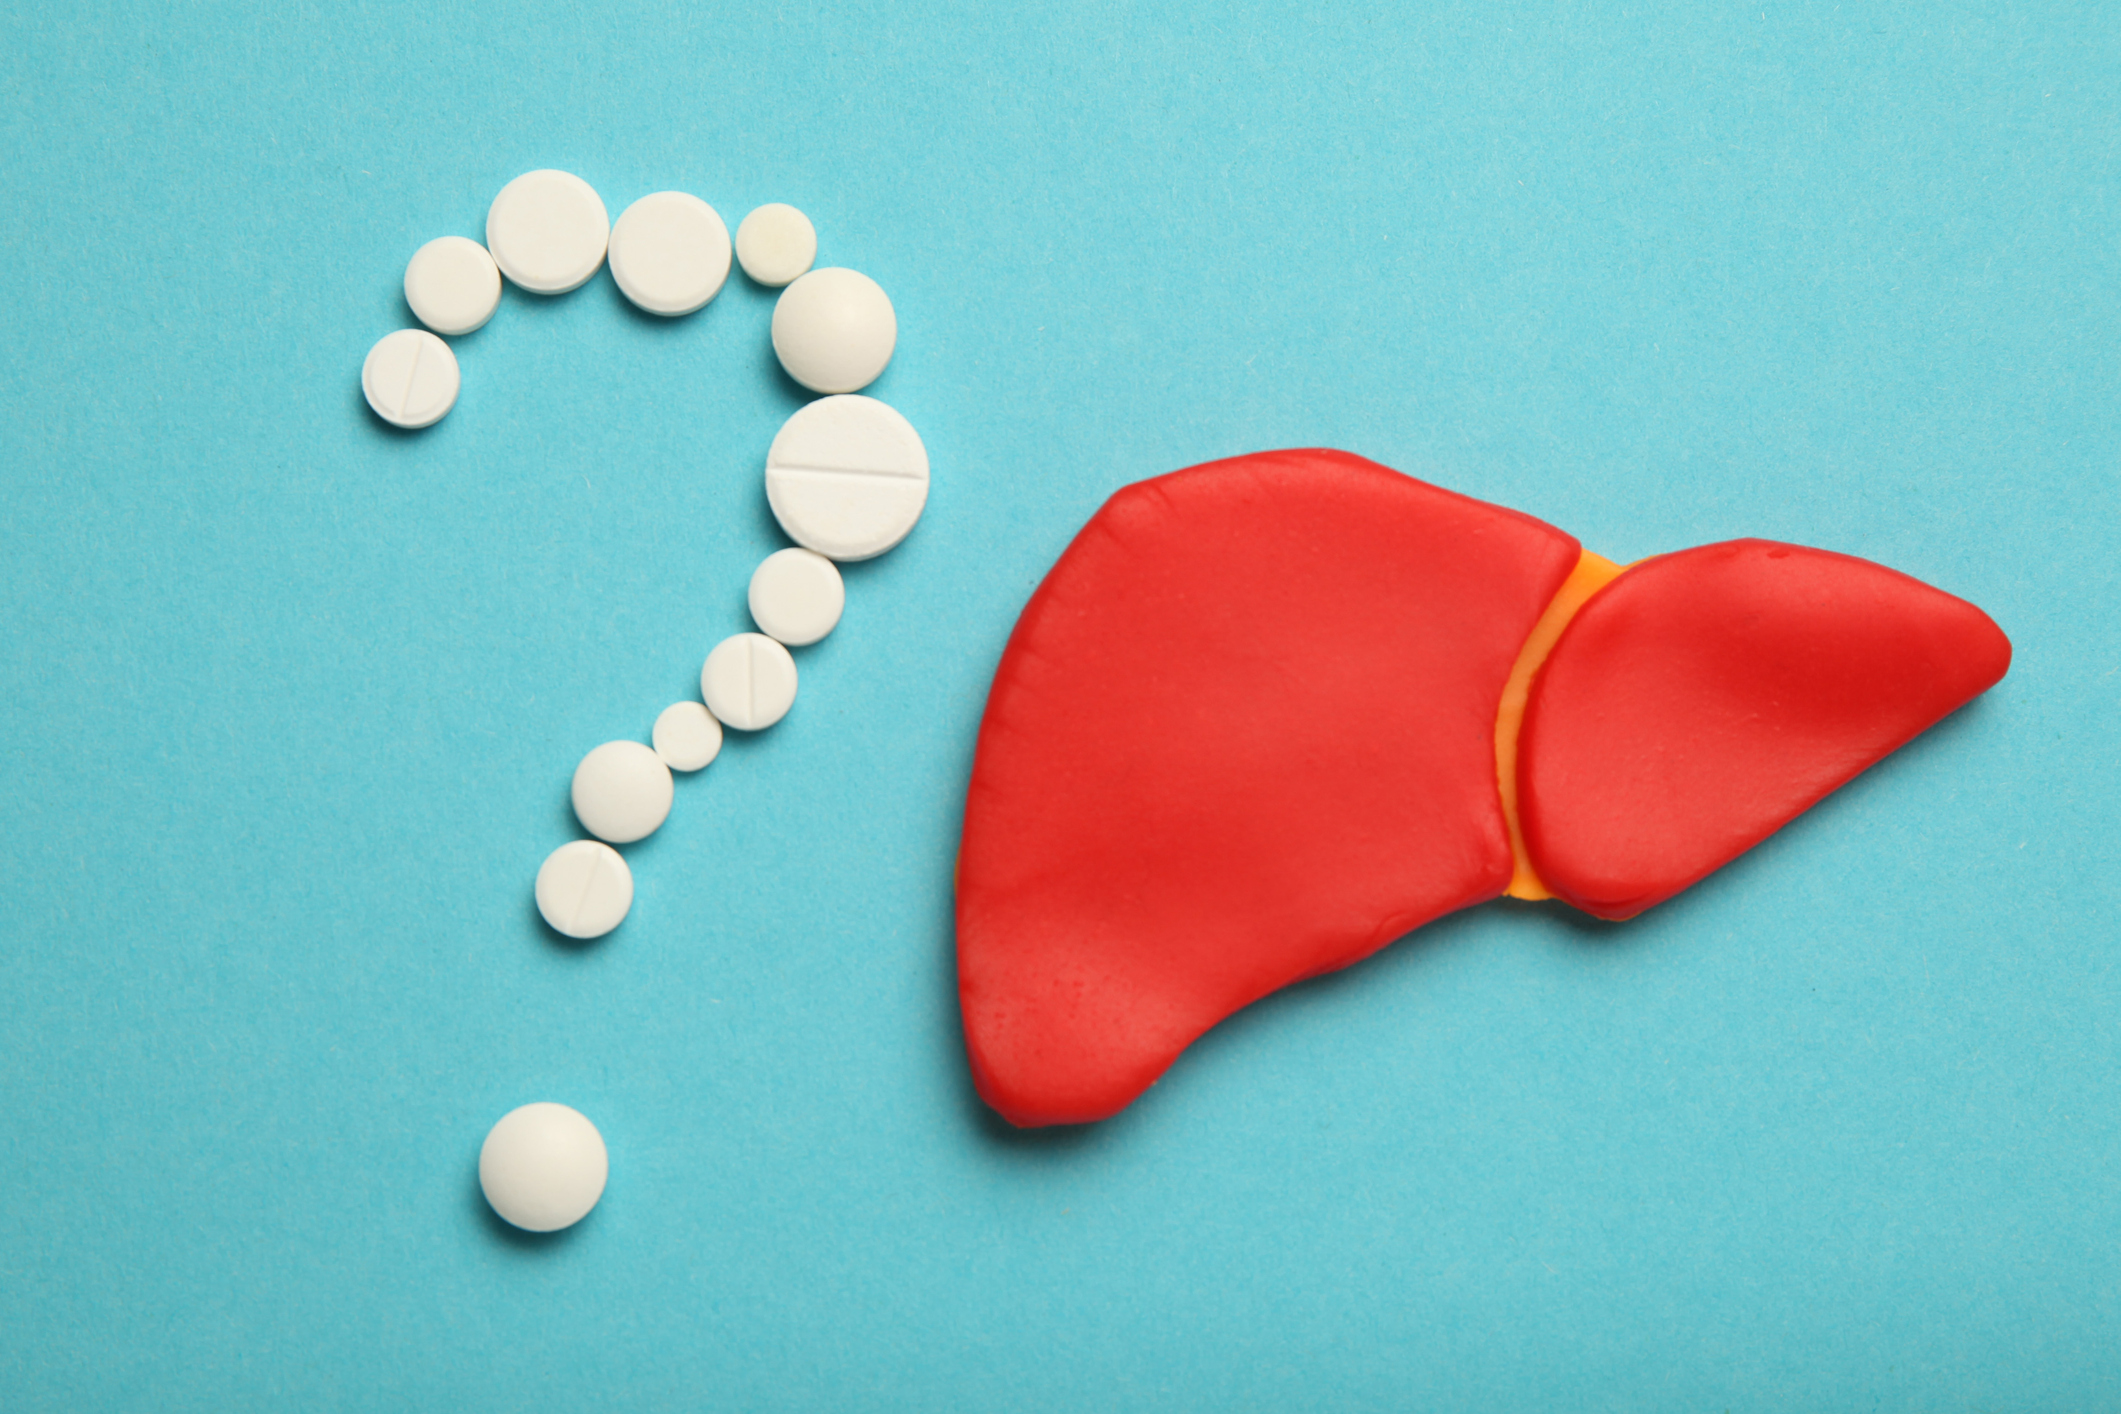 Two reasons to have your liver tested